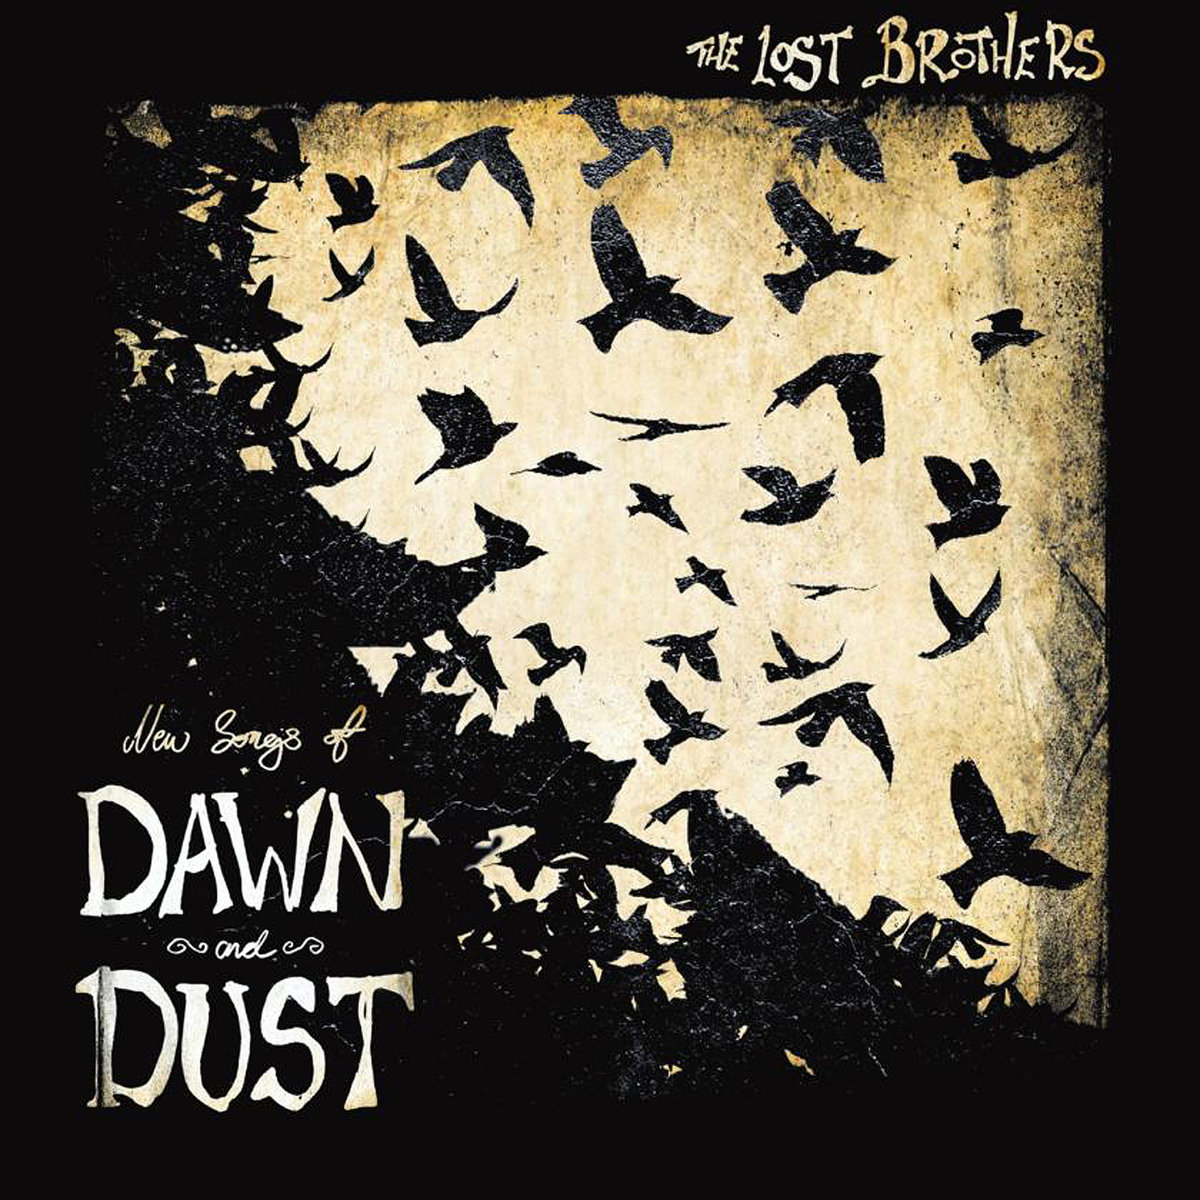 The Lost Brothers - New Songs of Dawn and Dust